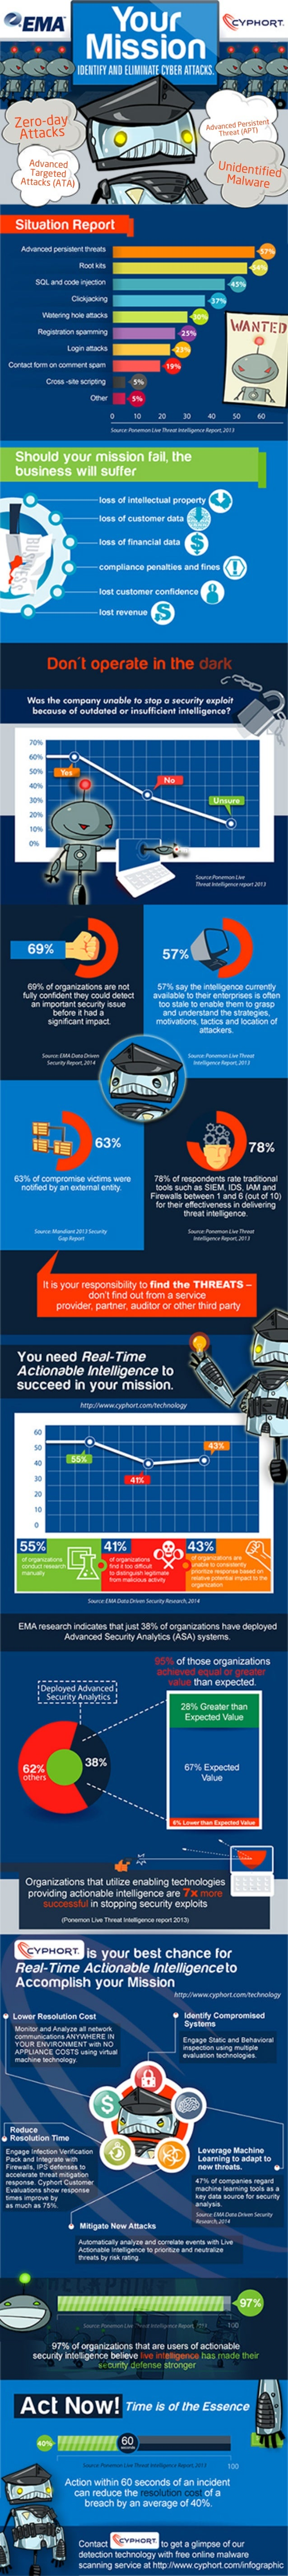 Infographic: Advanced threats report